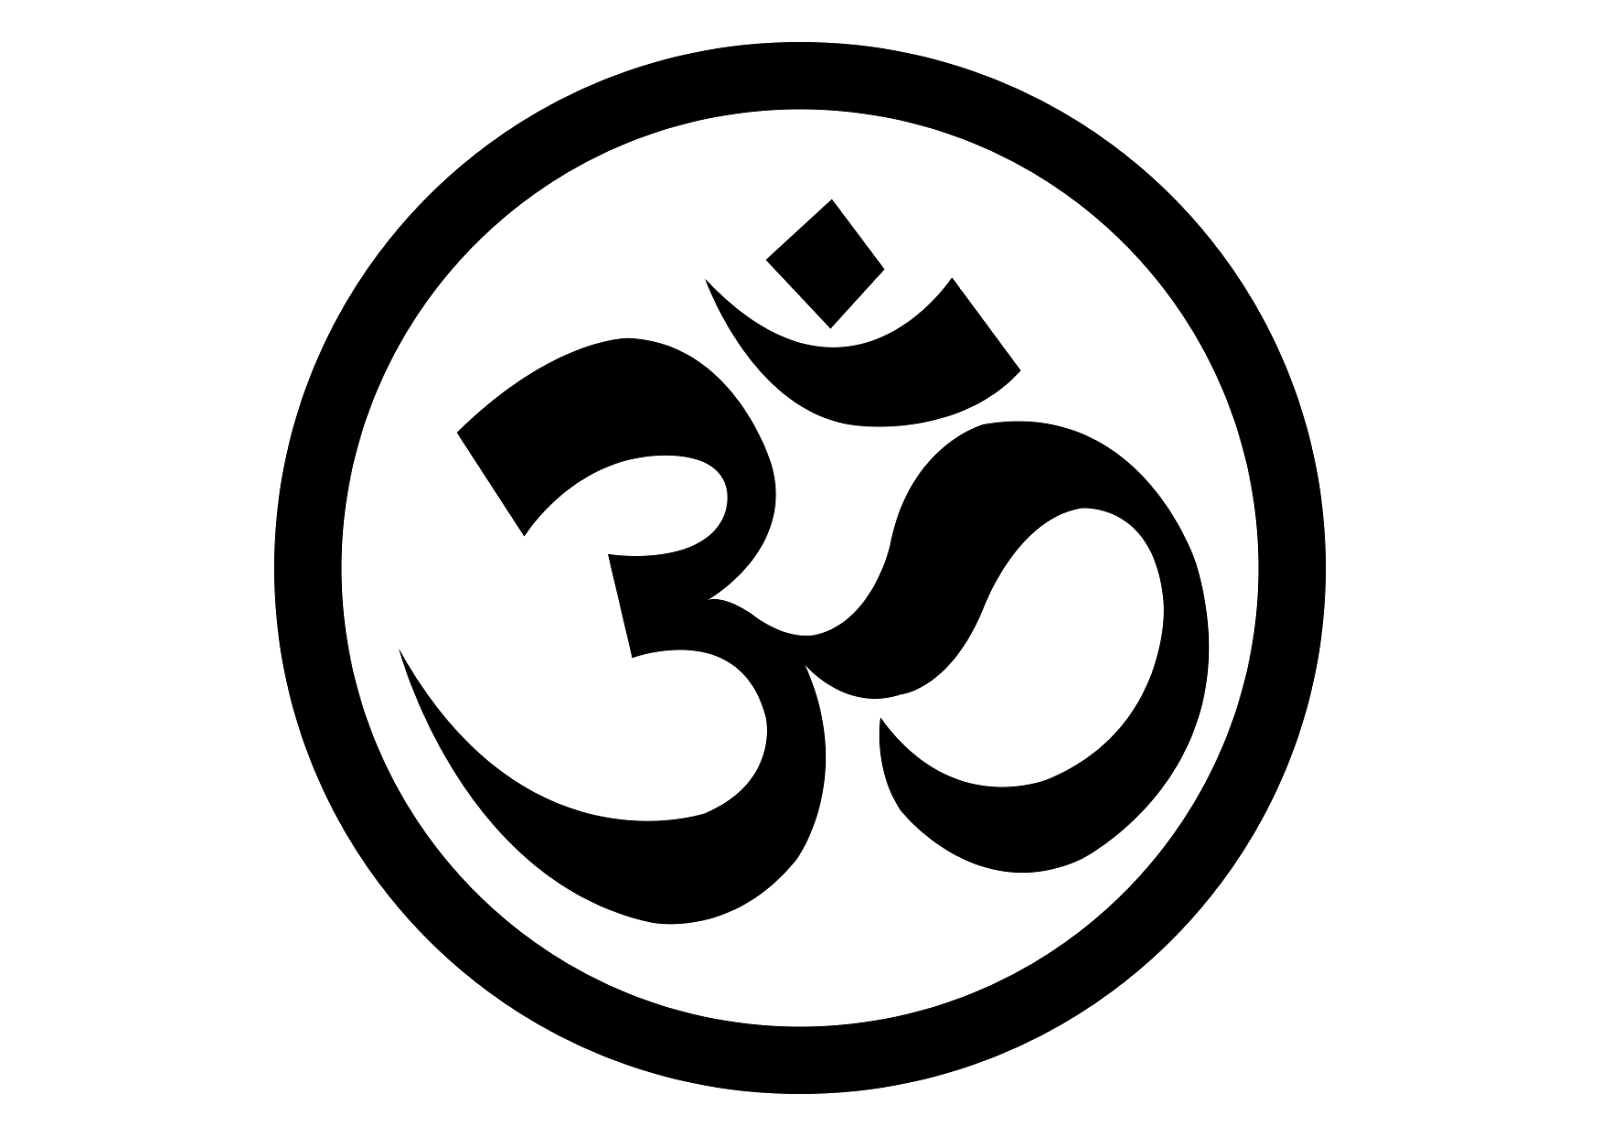 Om Transparent Images